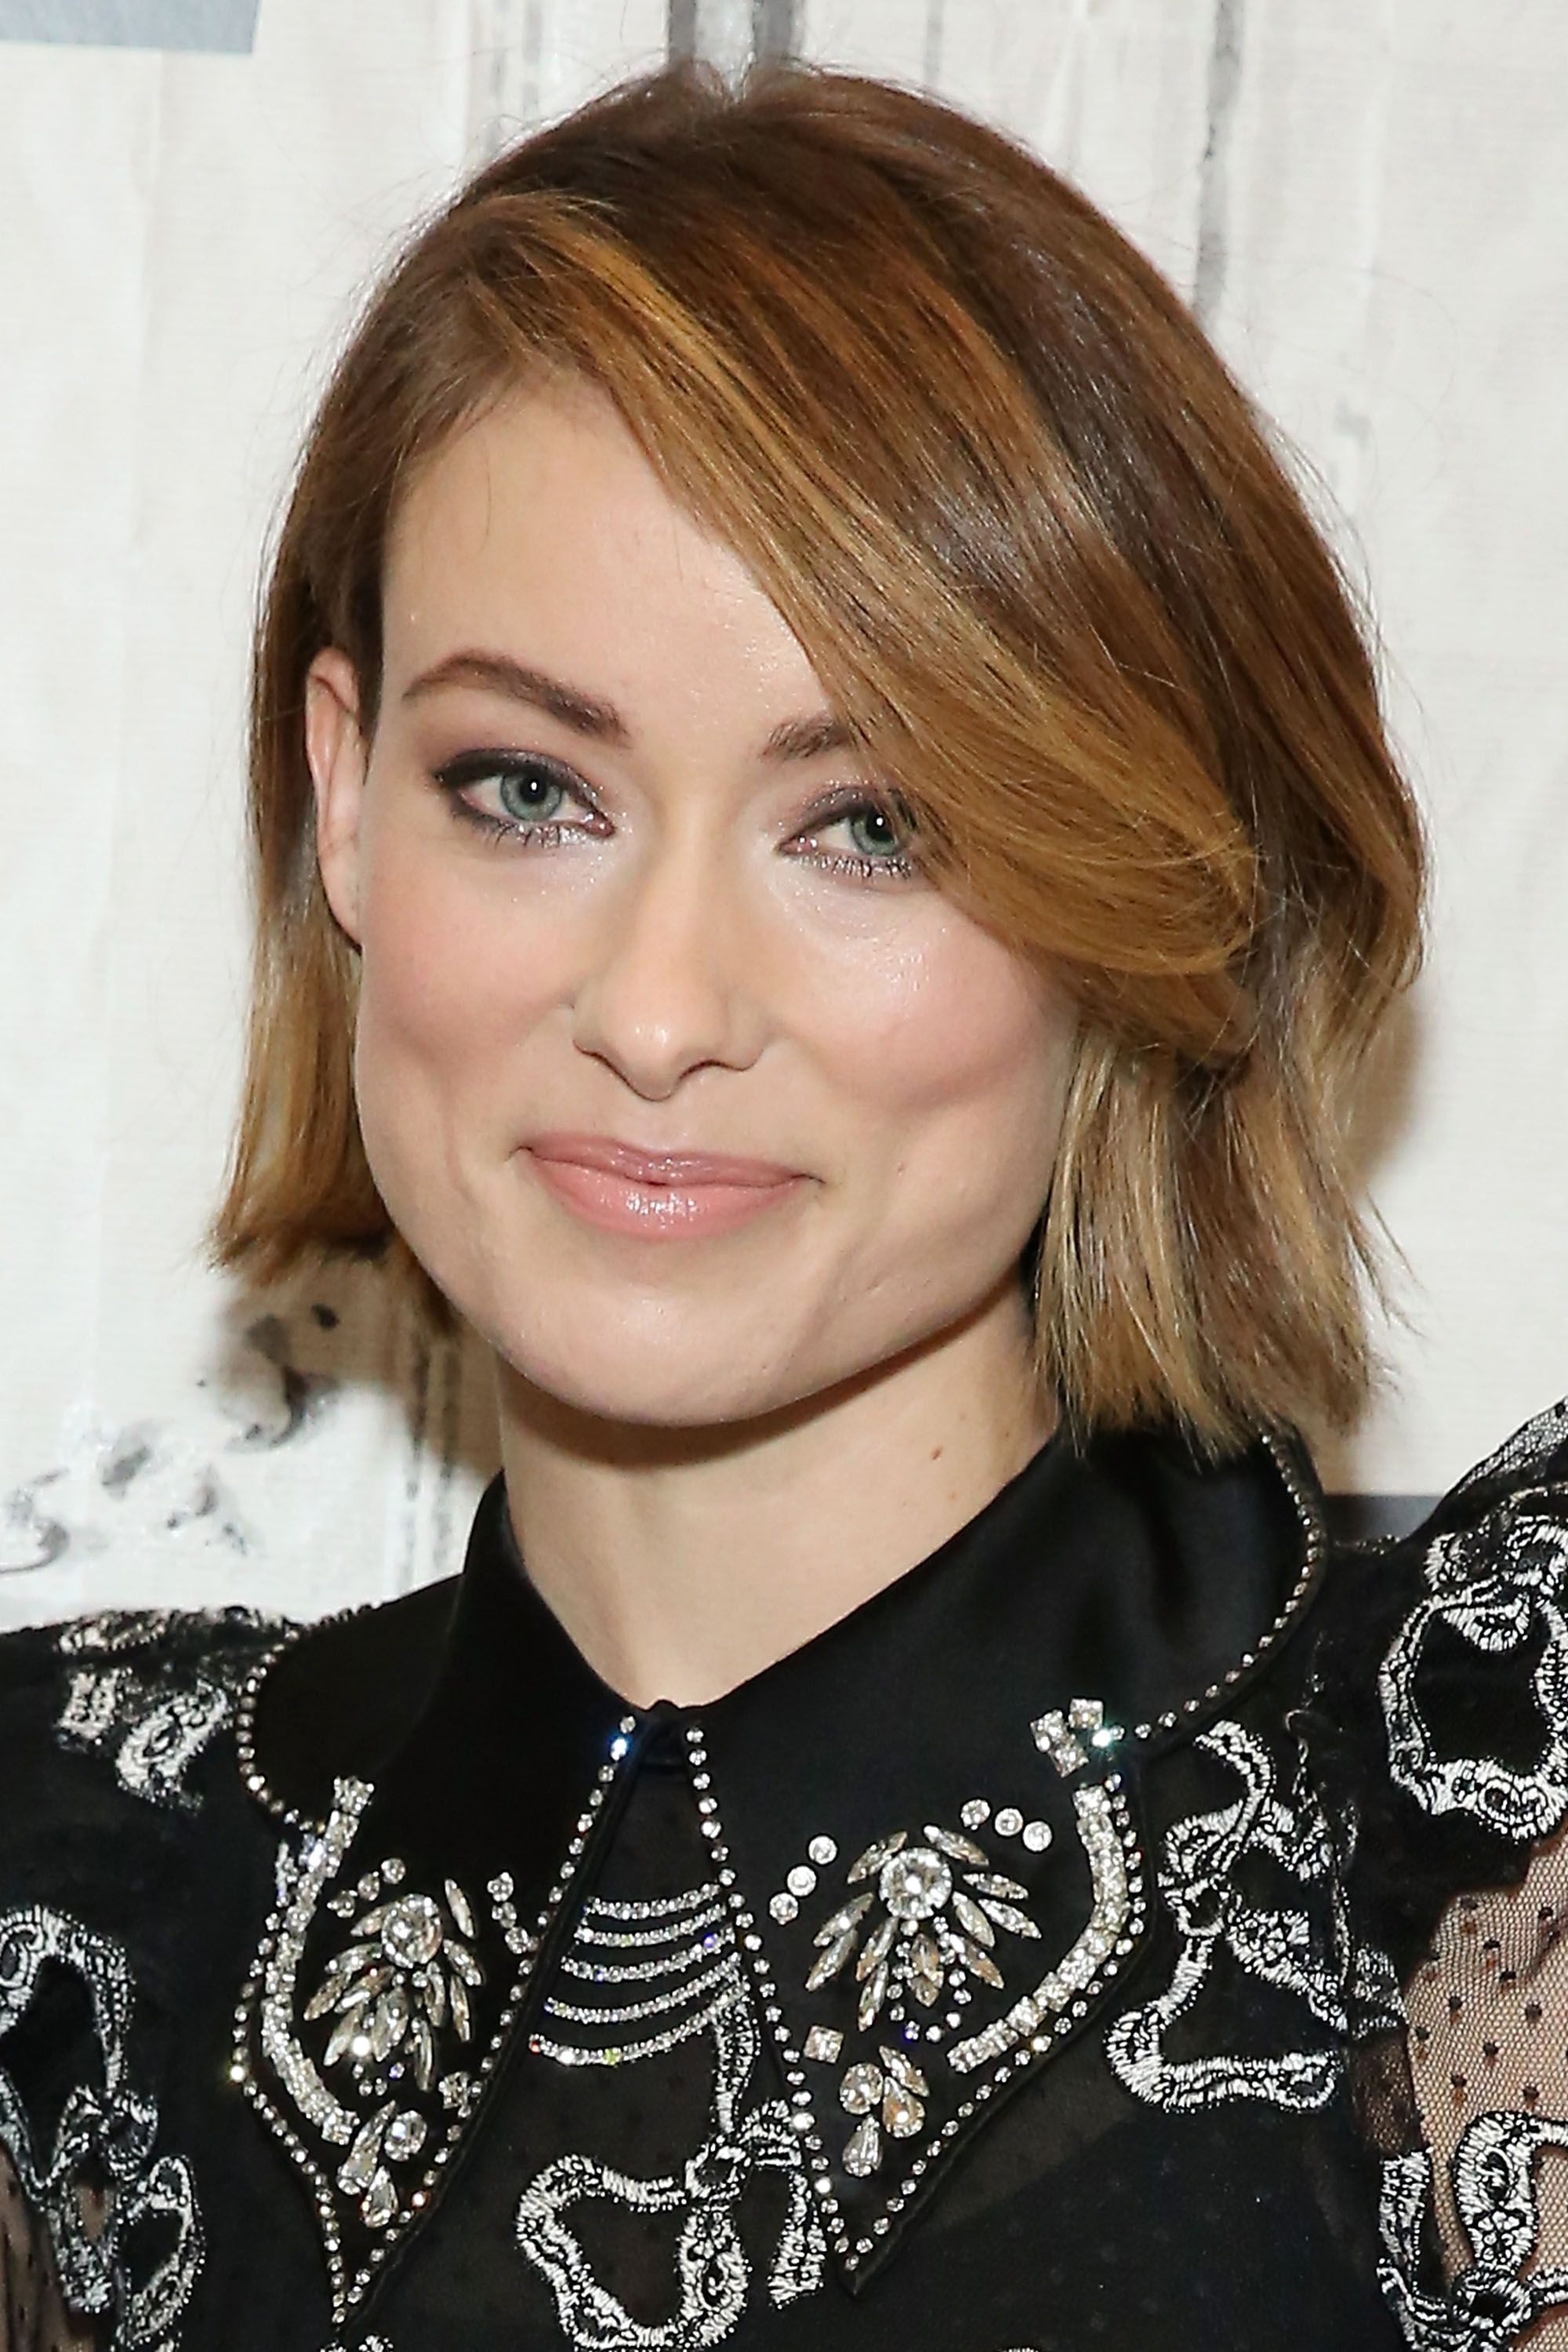 The 7 Best Hairstyles For Square Face Shapes Inside Short Haircuts For Square Jawline (View 4 of 25)